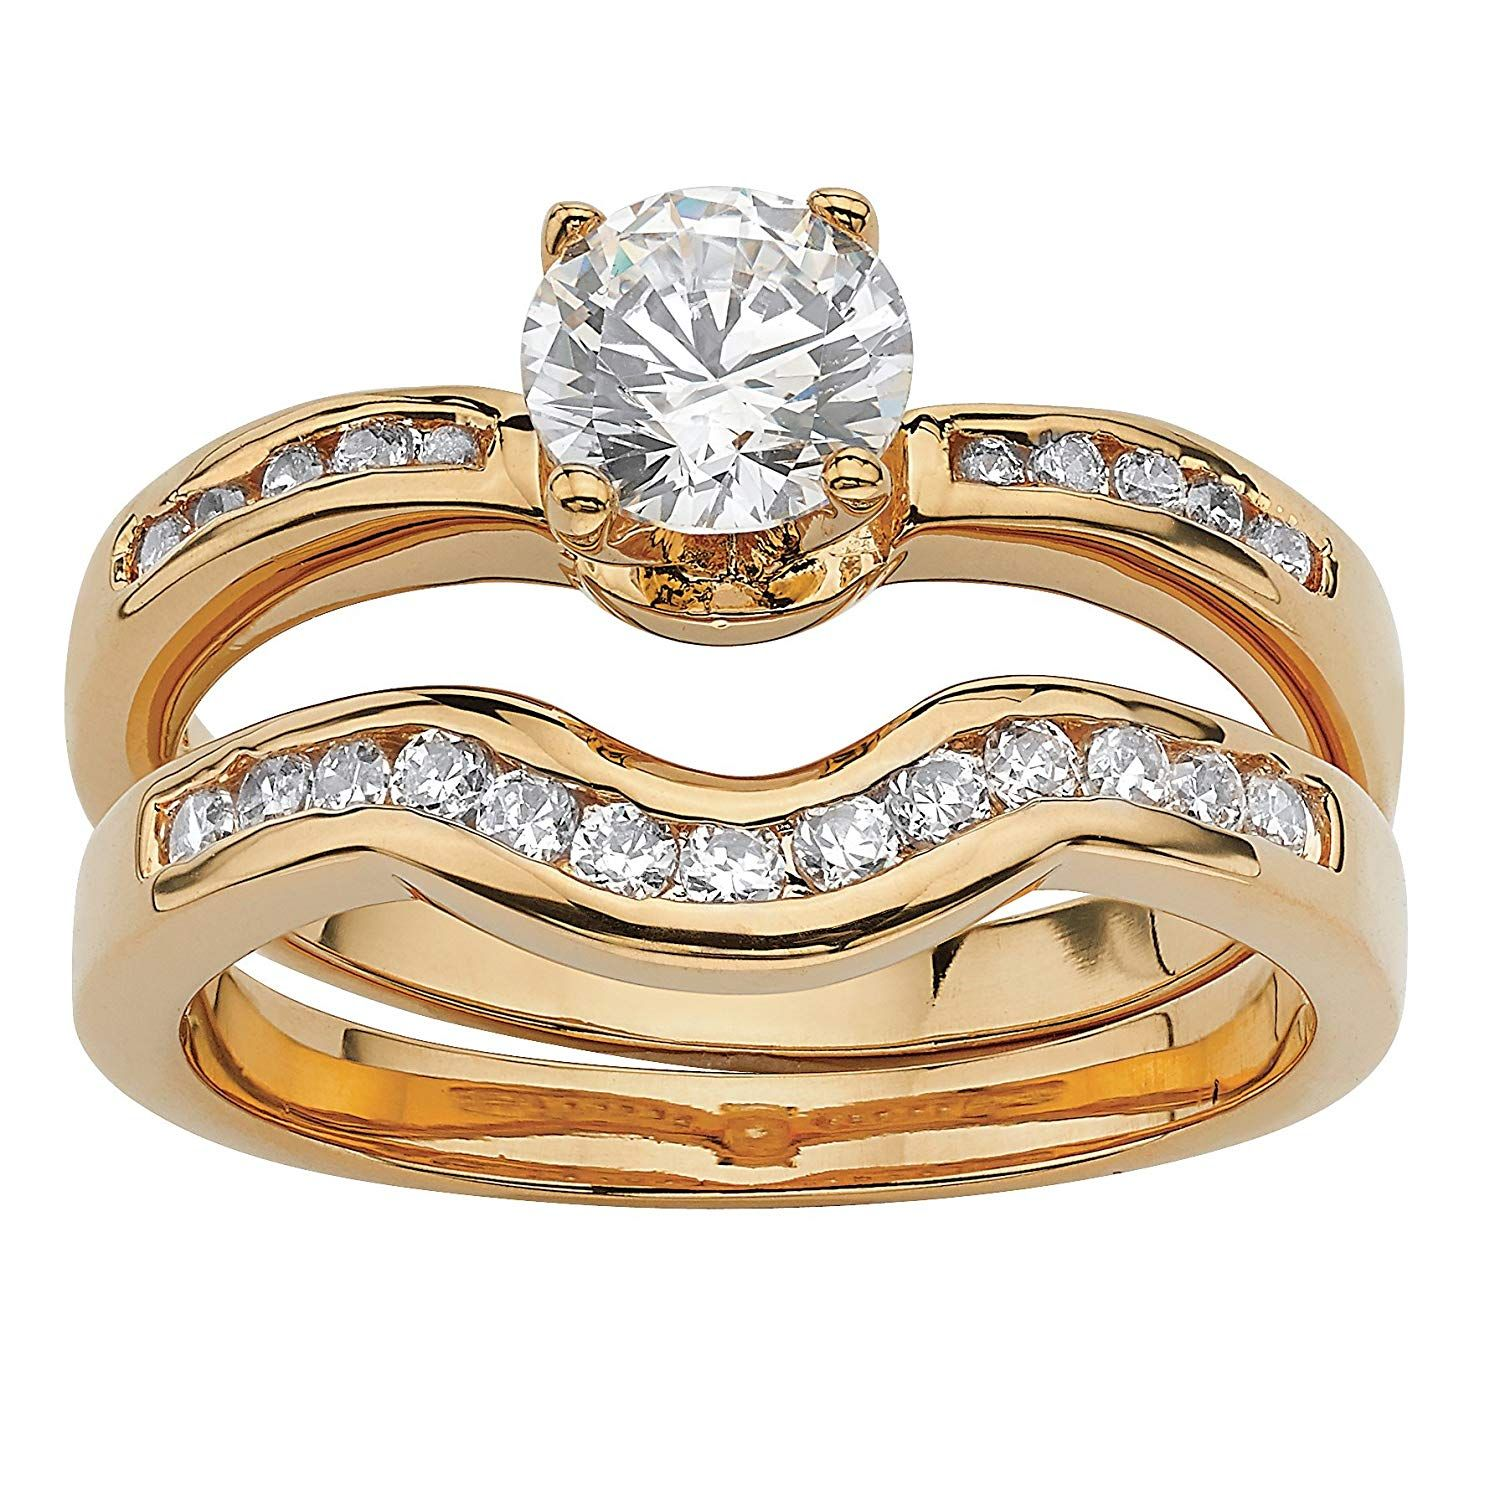 Palm Beach Jewelry 18k Yellow Gold Plated Round Cubic Zirconia Bridal Ring Set Click Image For More Details In 2020 Bridal Rings Bridal Ring Set Bridal Ring Sets